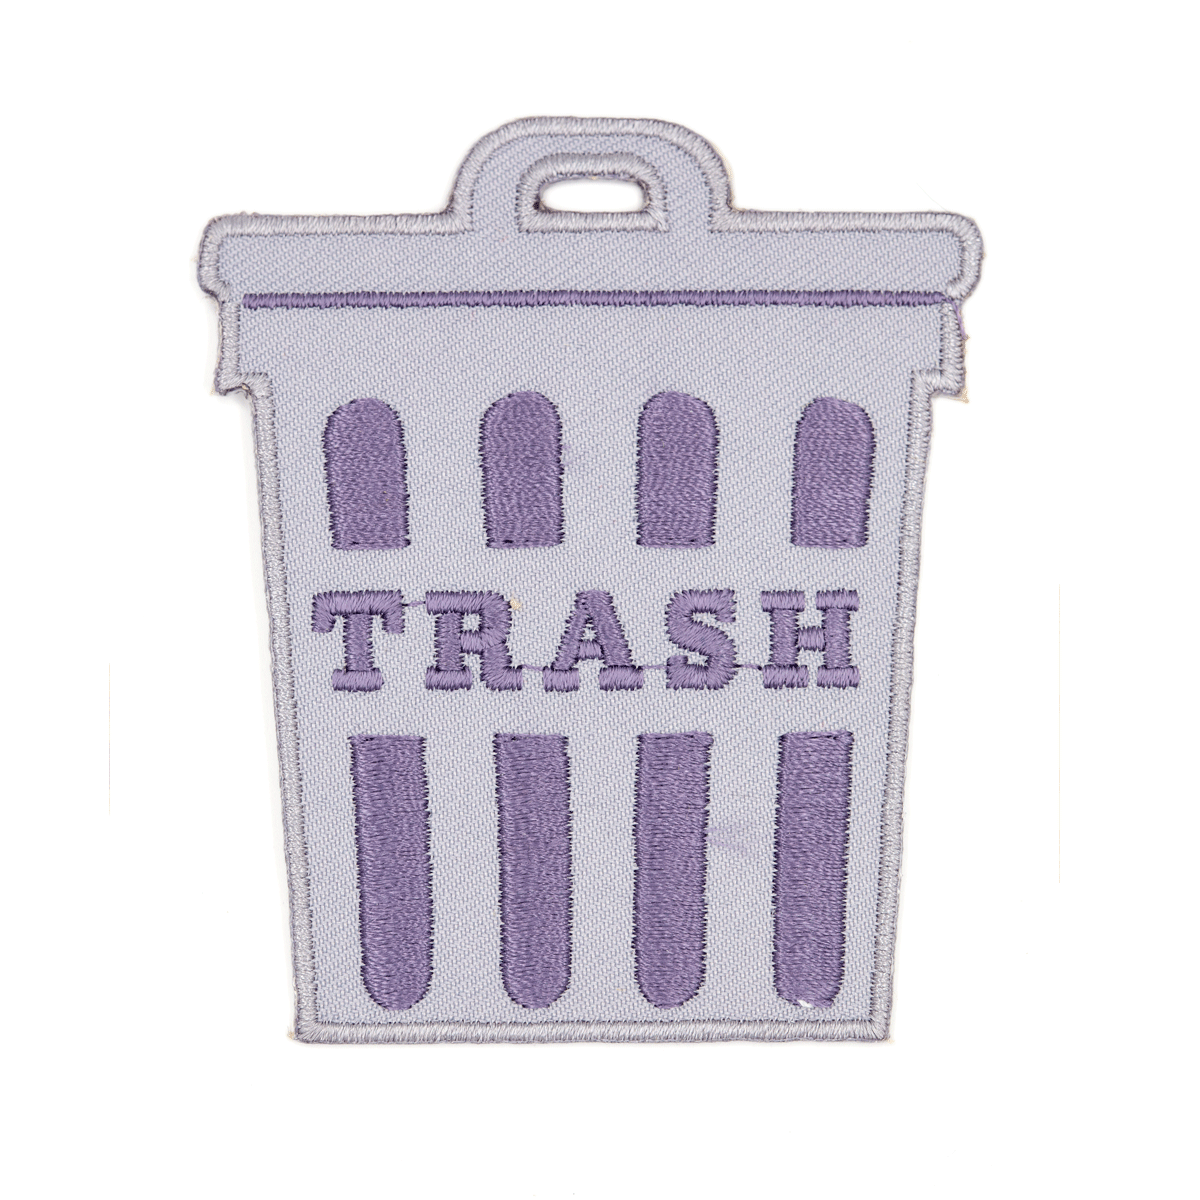 Trash Can Patch